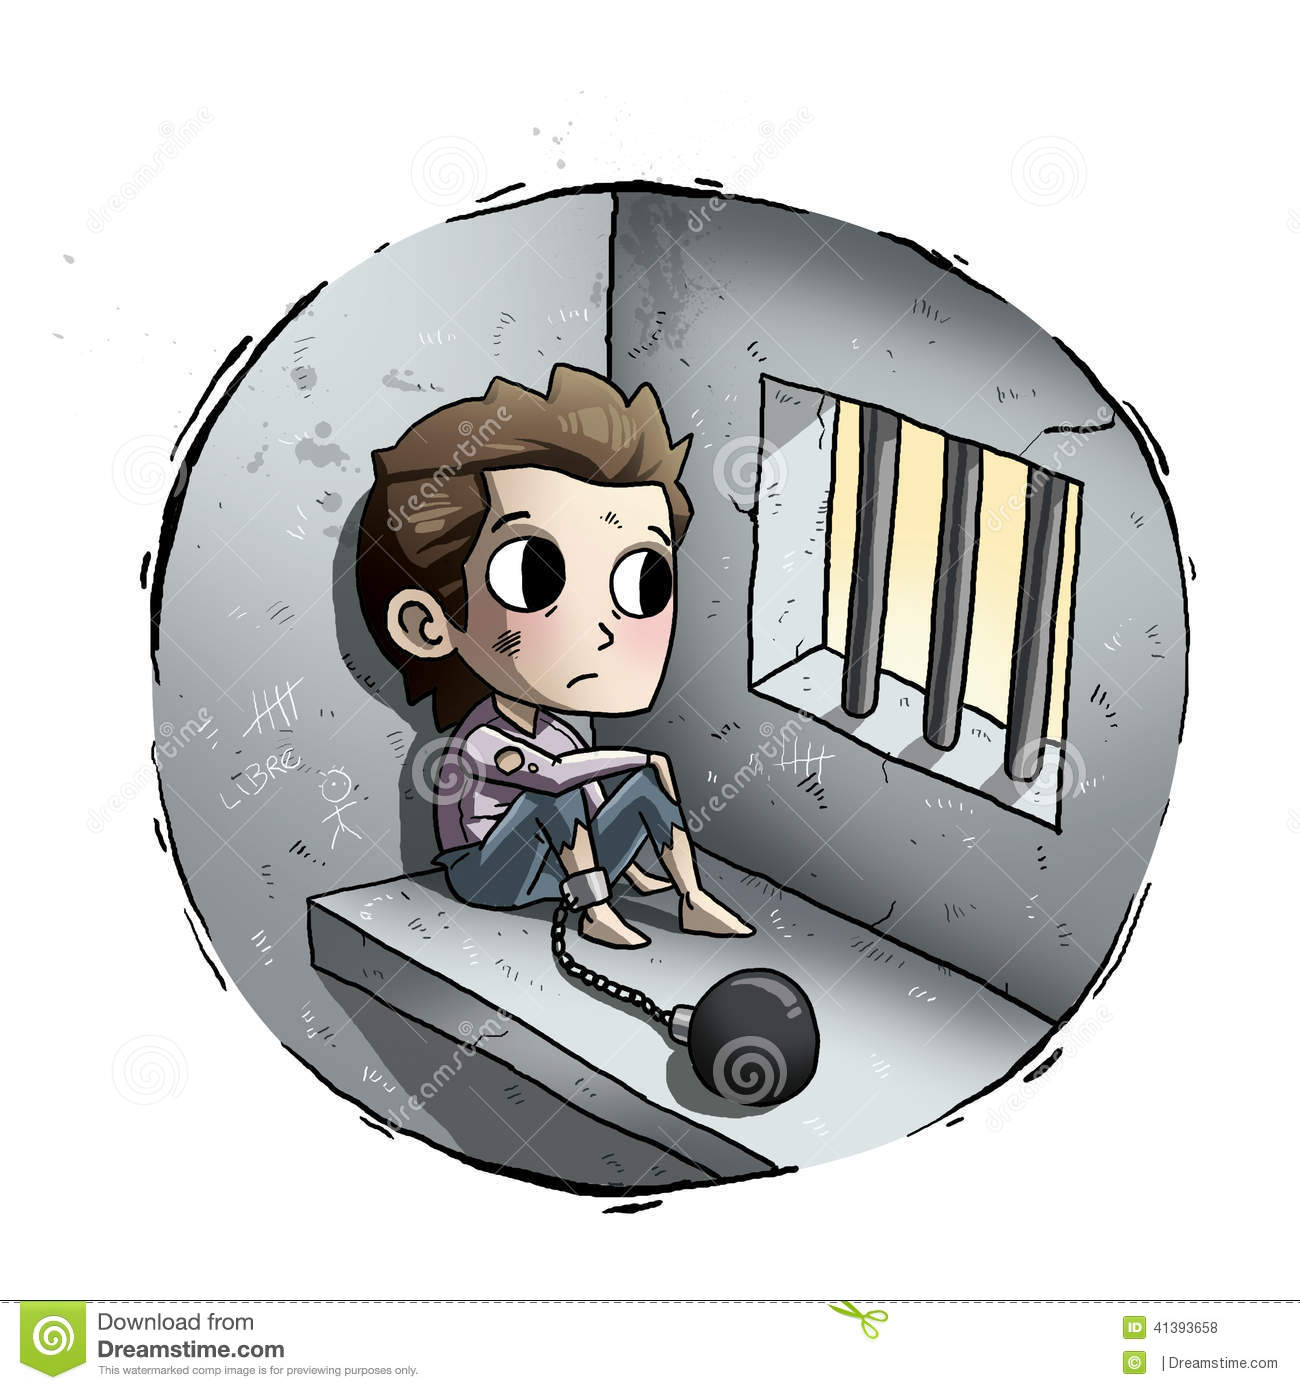 kid in jail stock illustration illustration of people jail clipart free download jail clip art funny